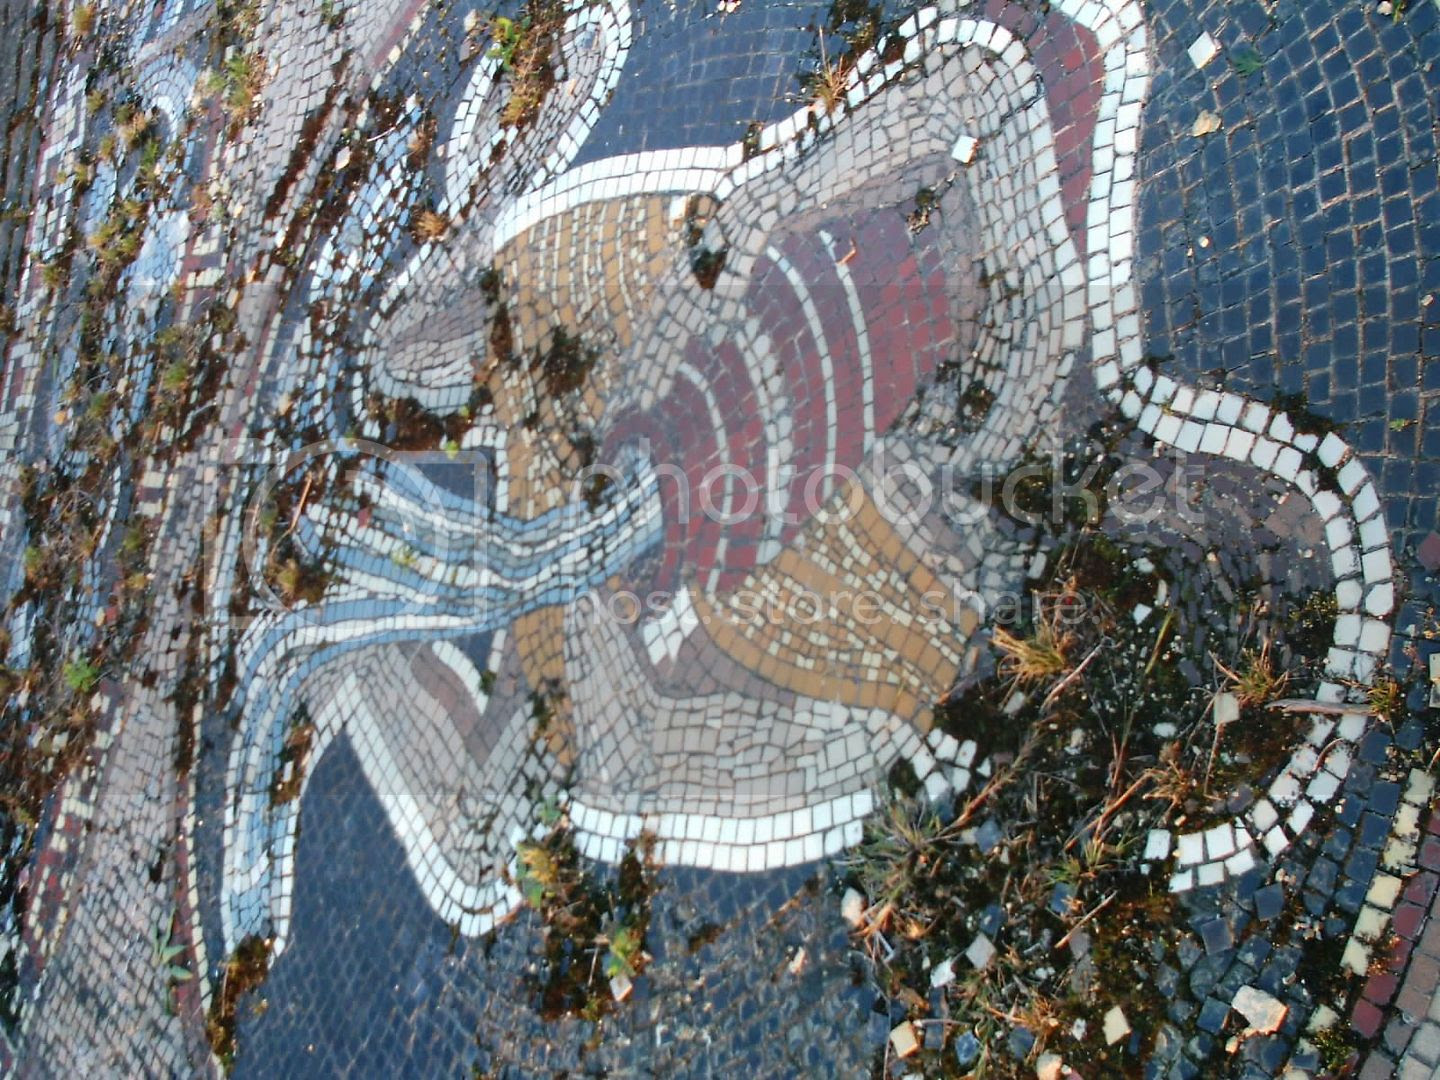 anyone know how to repair outdoor mosaics?